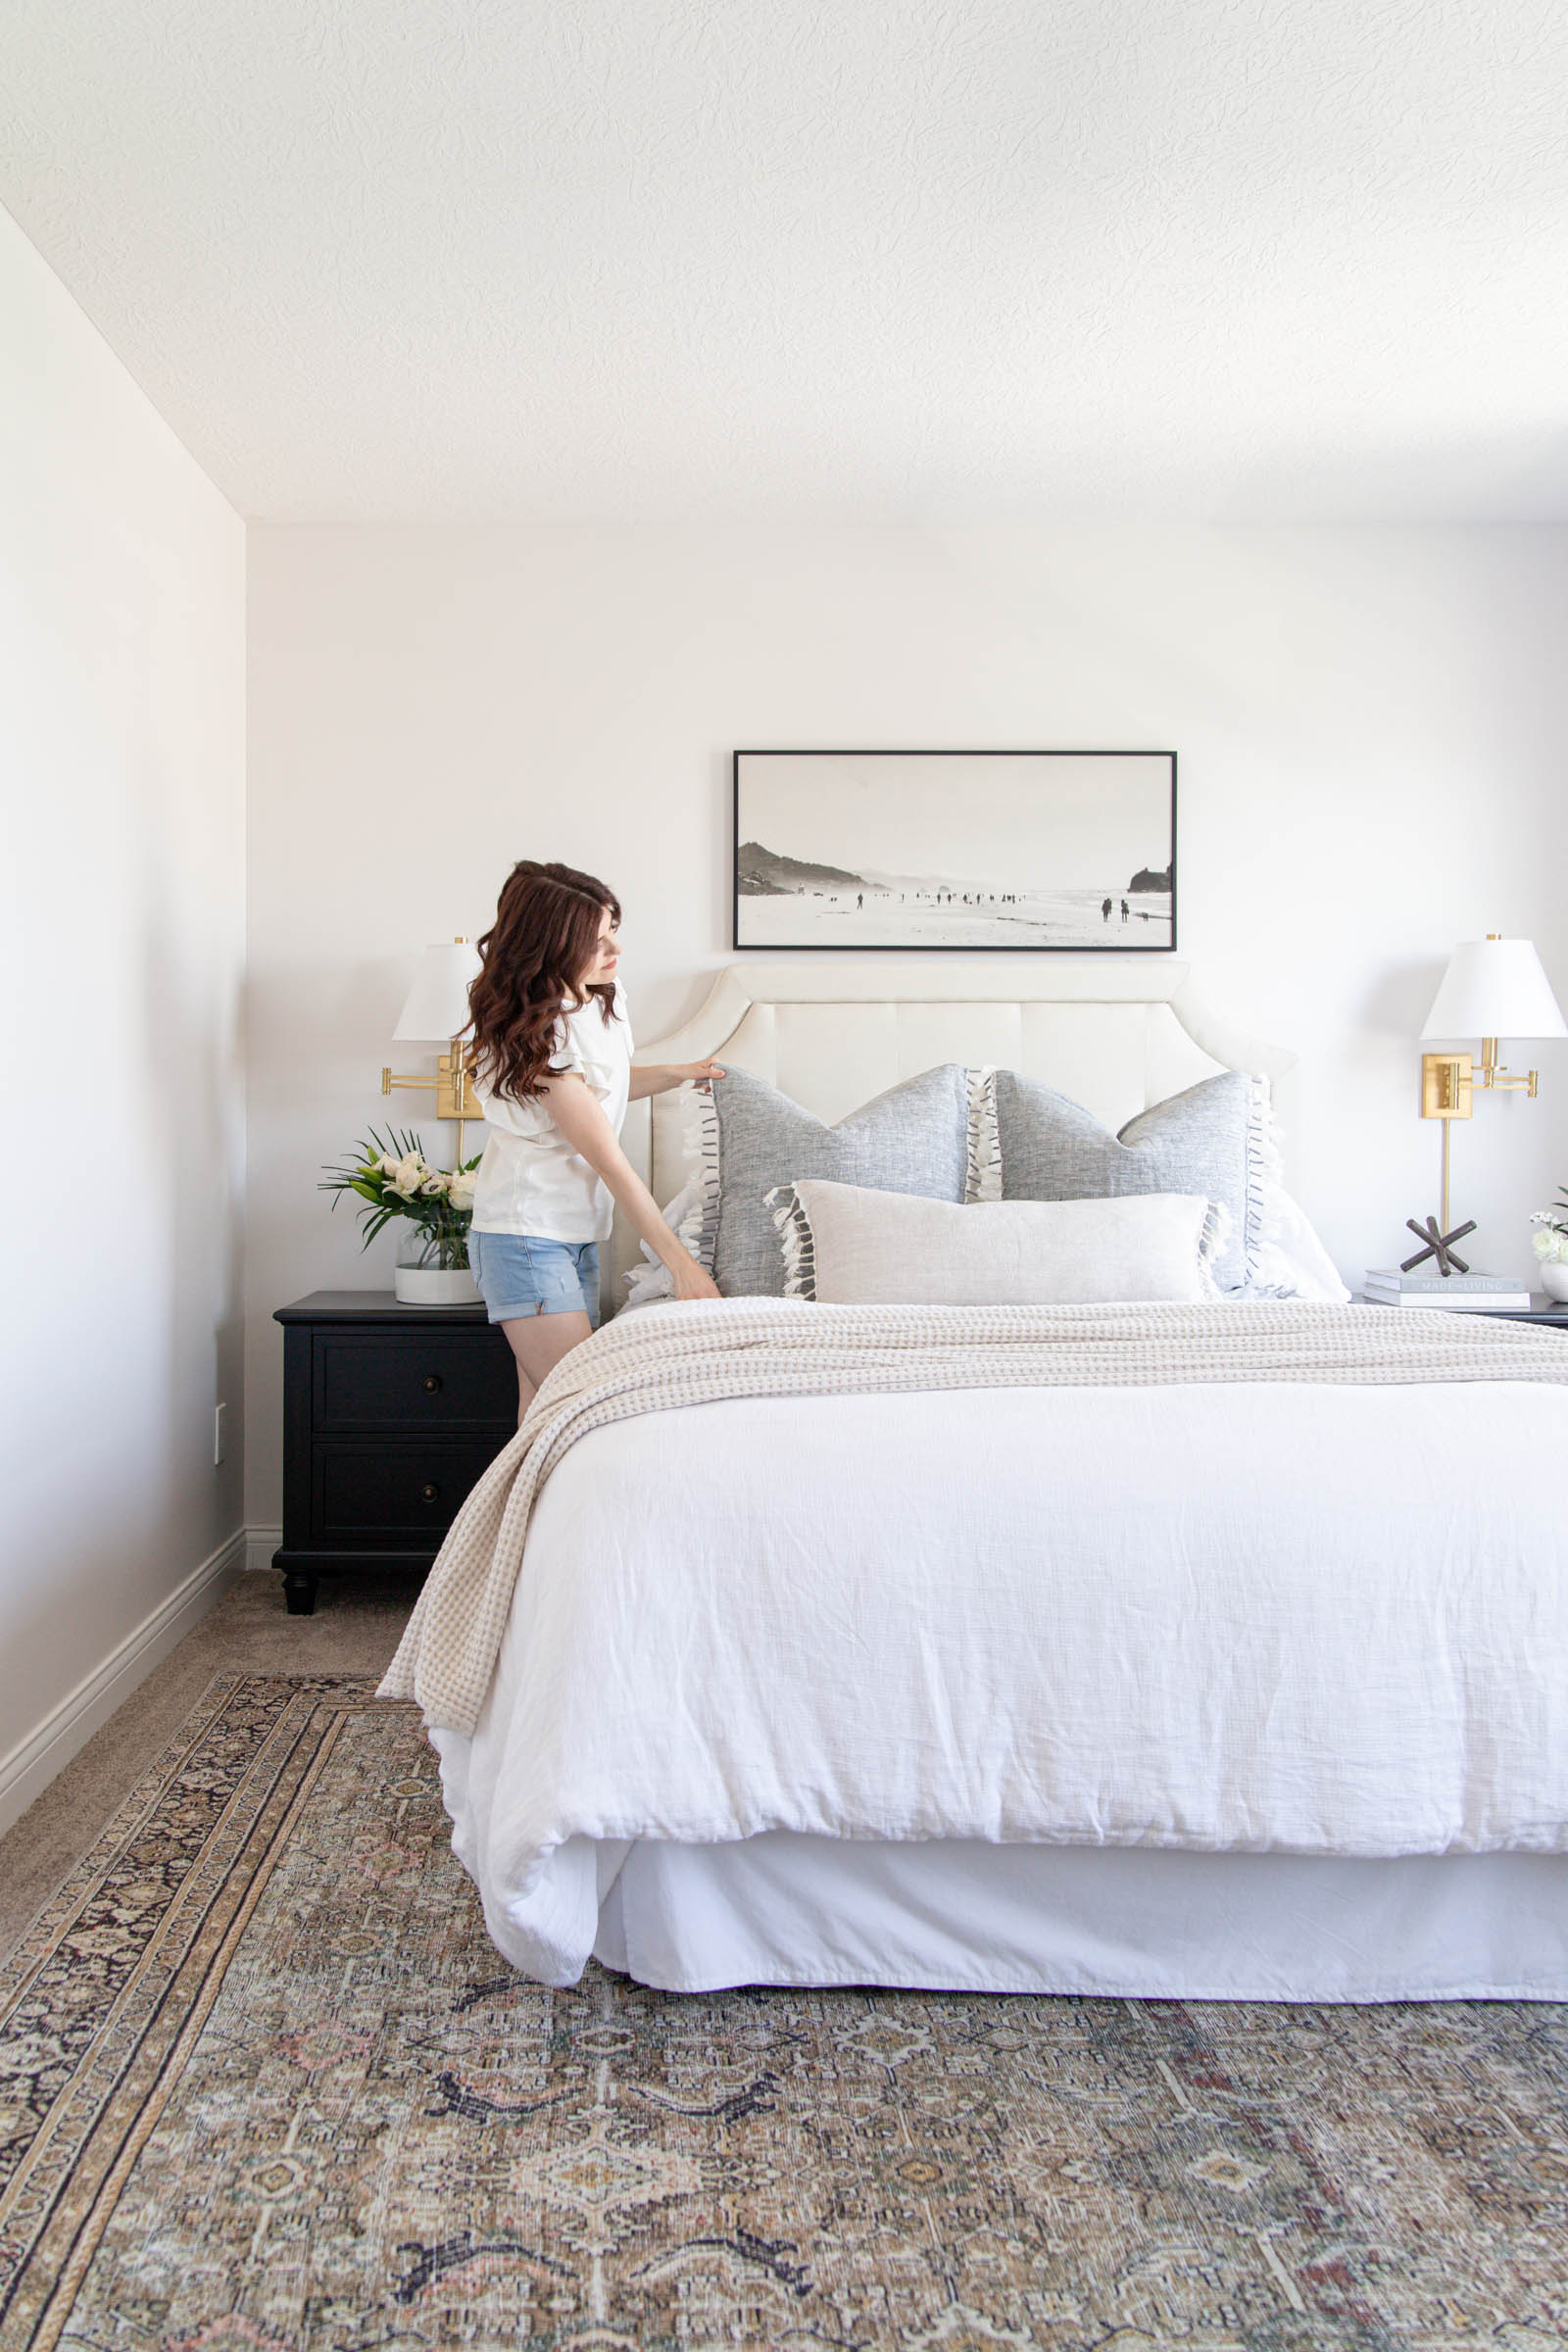 casual bedroom styling with white linen duvet and linen pillow covers